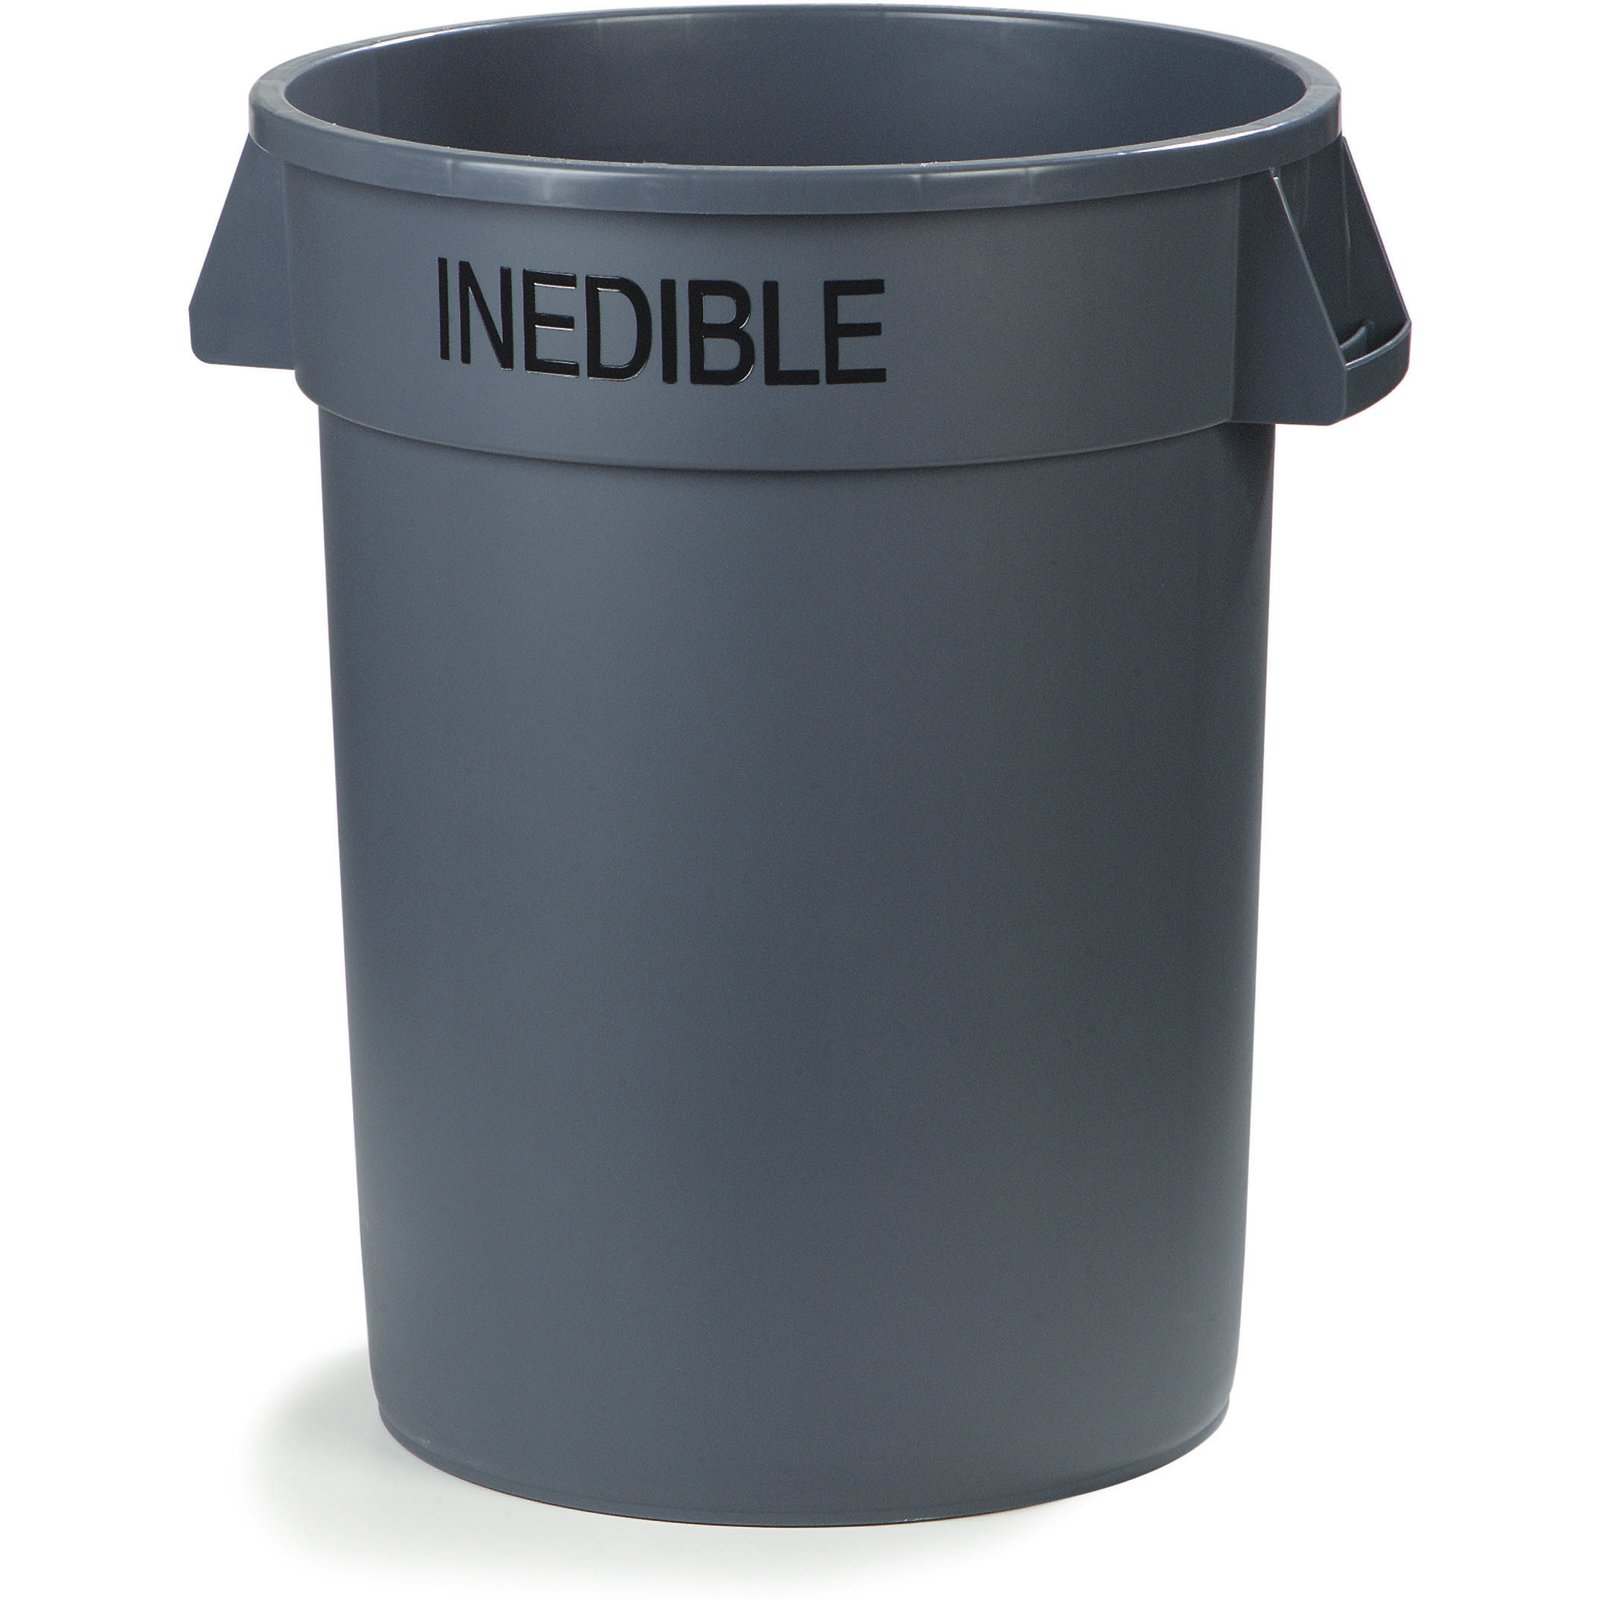 341032inea23 Bronco Round Inedible Waste Container 32